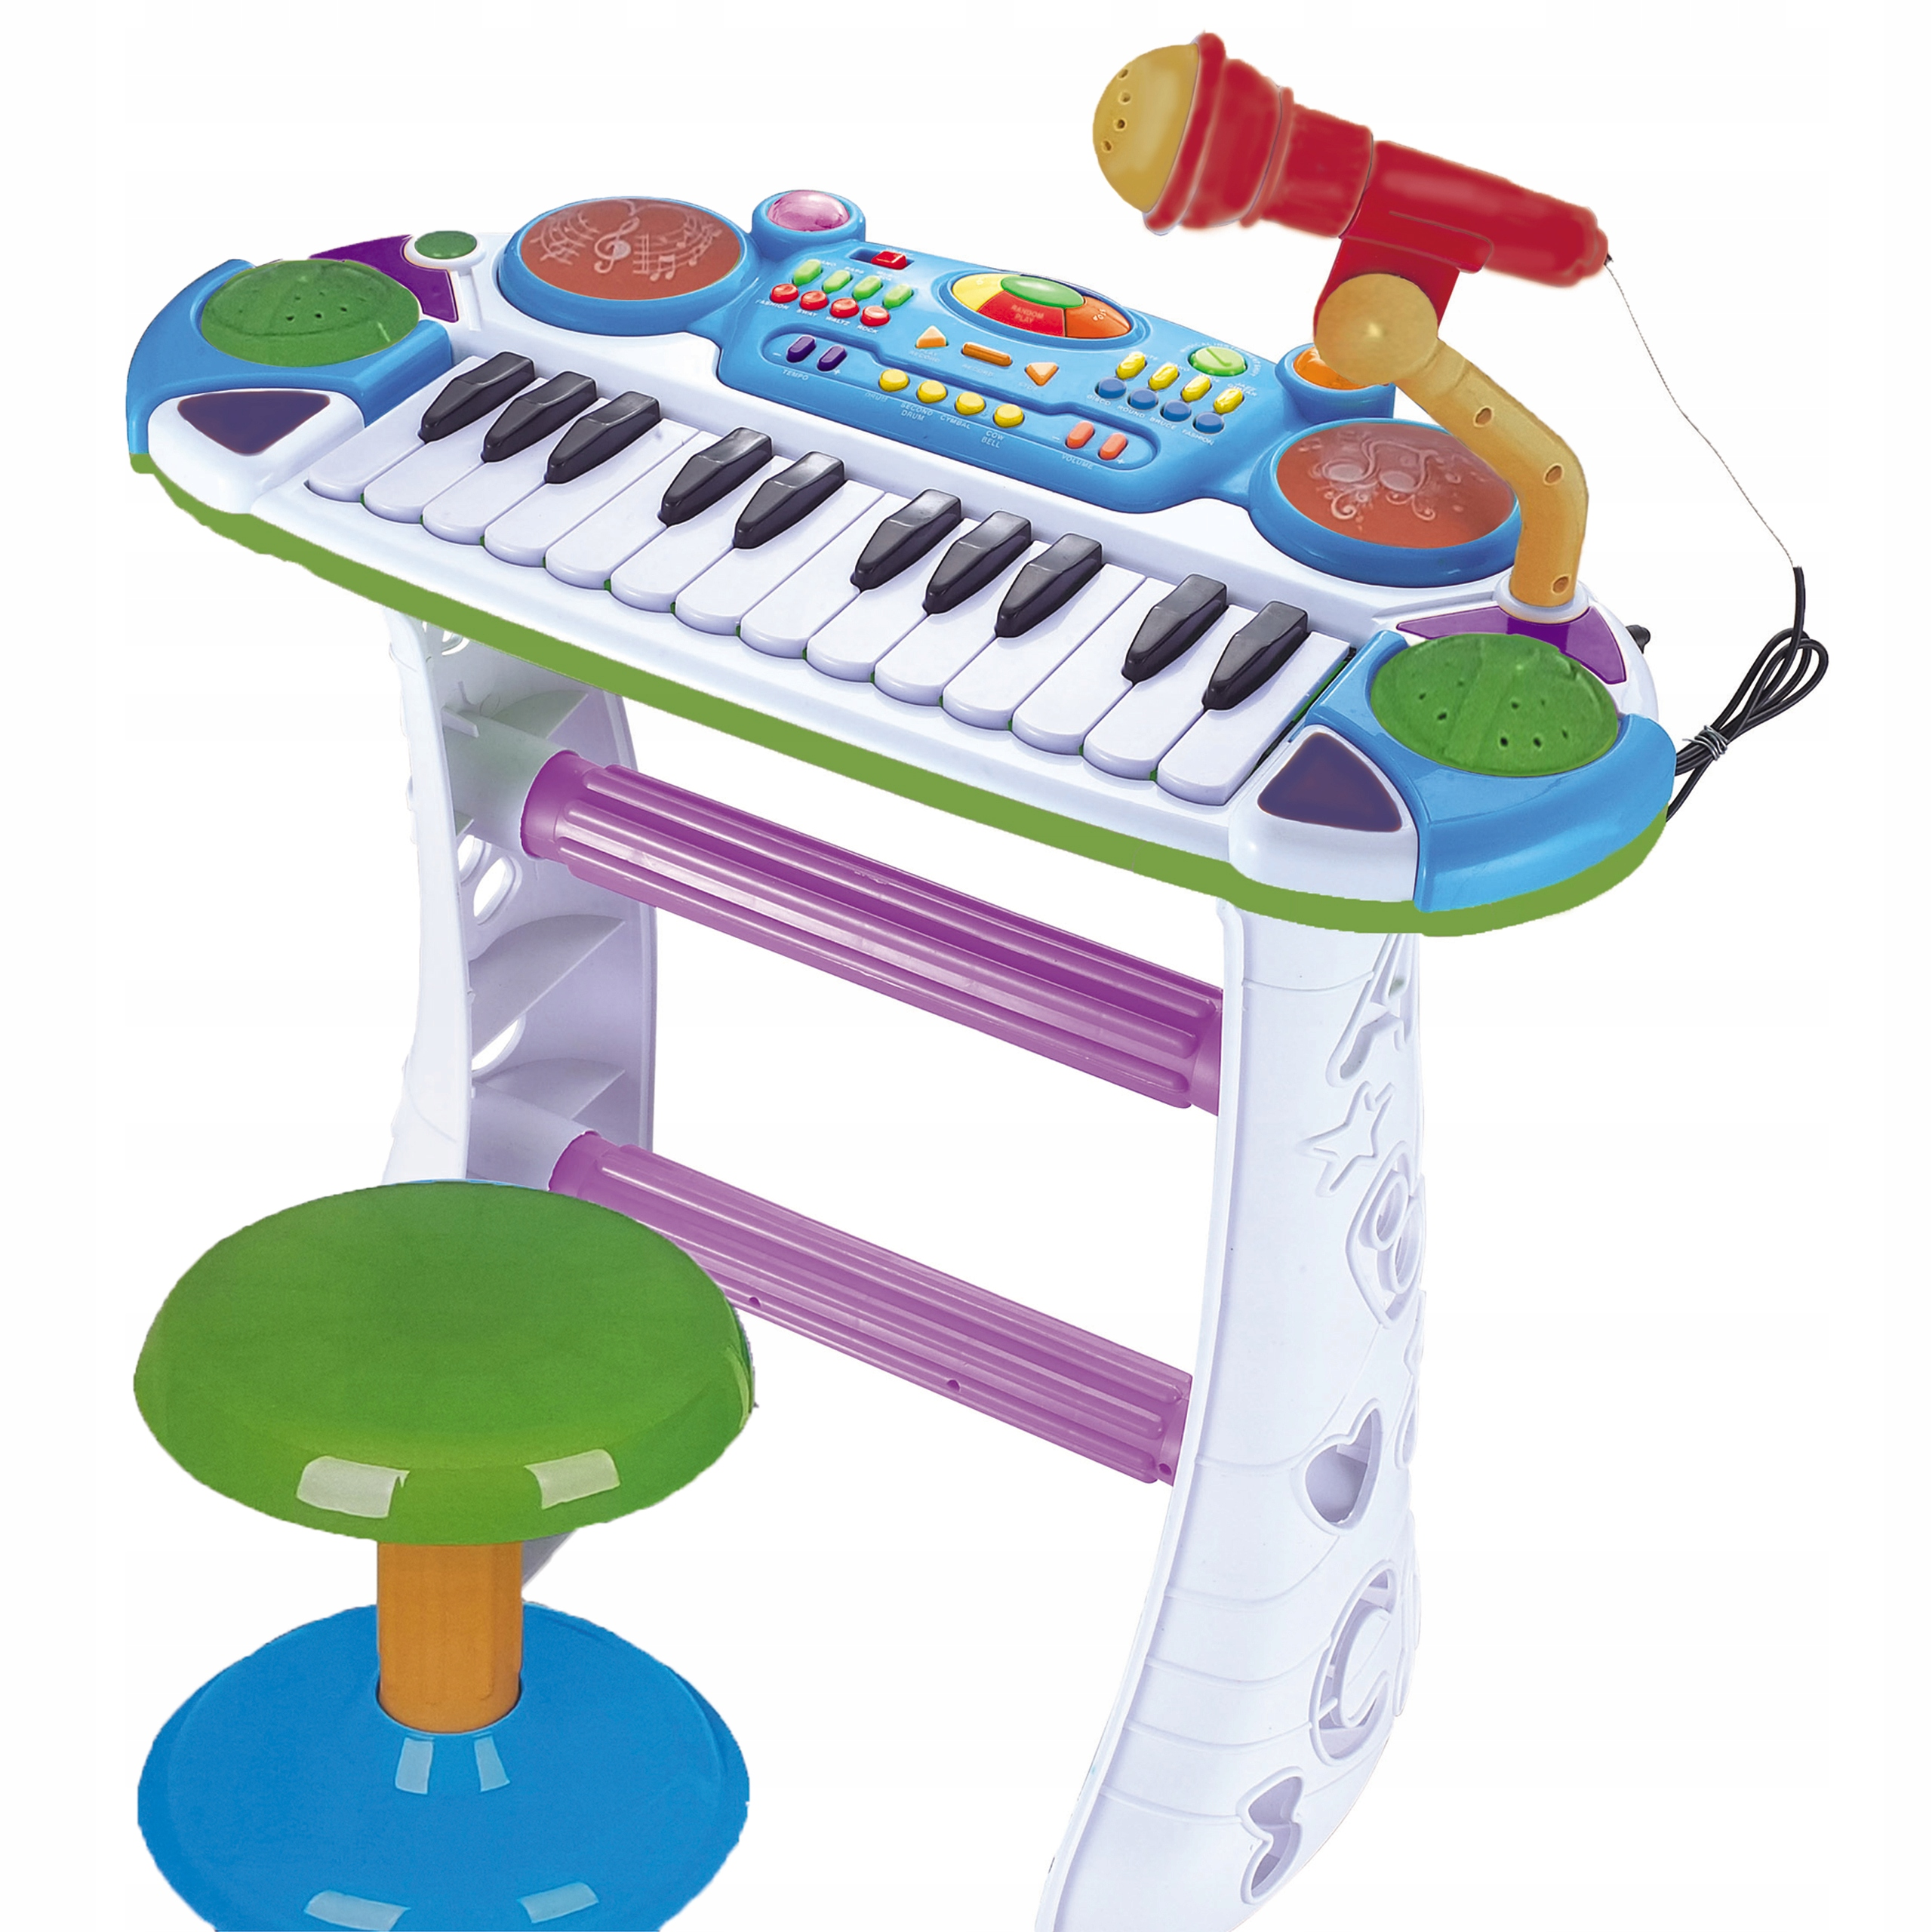 Item KEYBOARD FOR KIDS BODIES A MICROPHONE, A PIANO, A STOOL